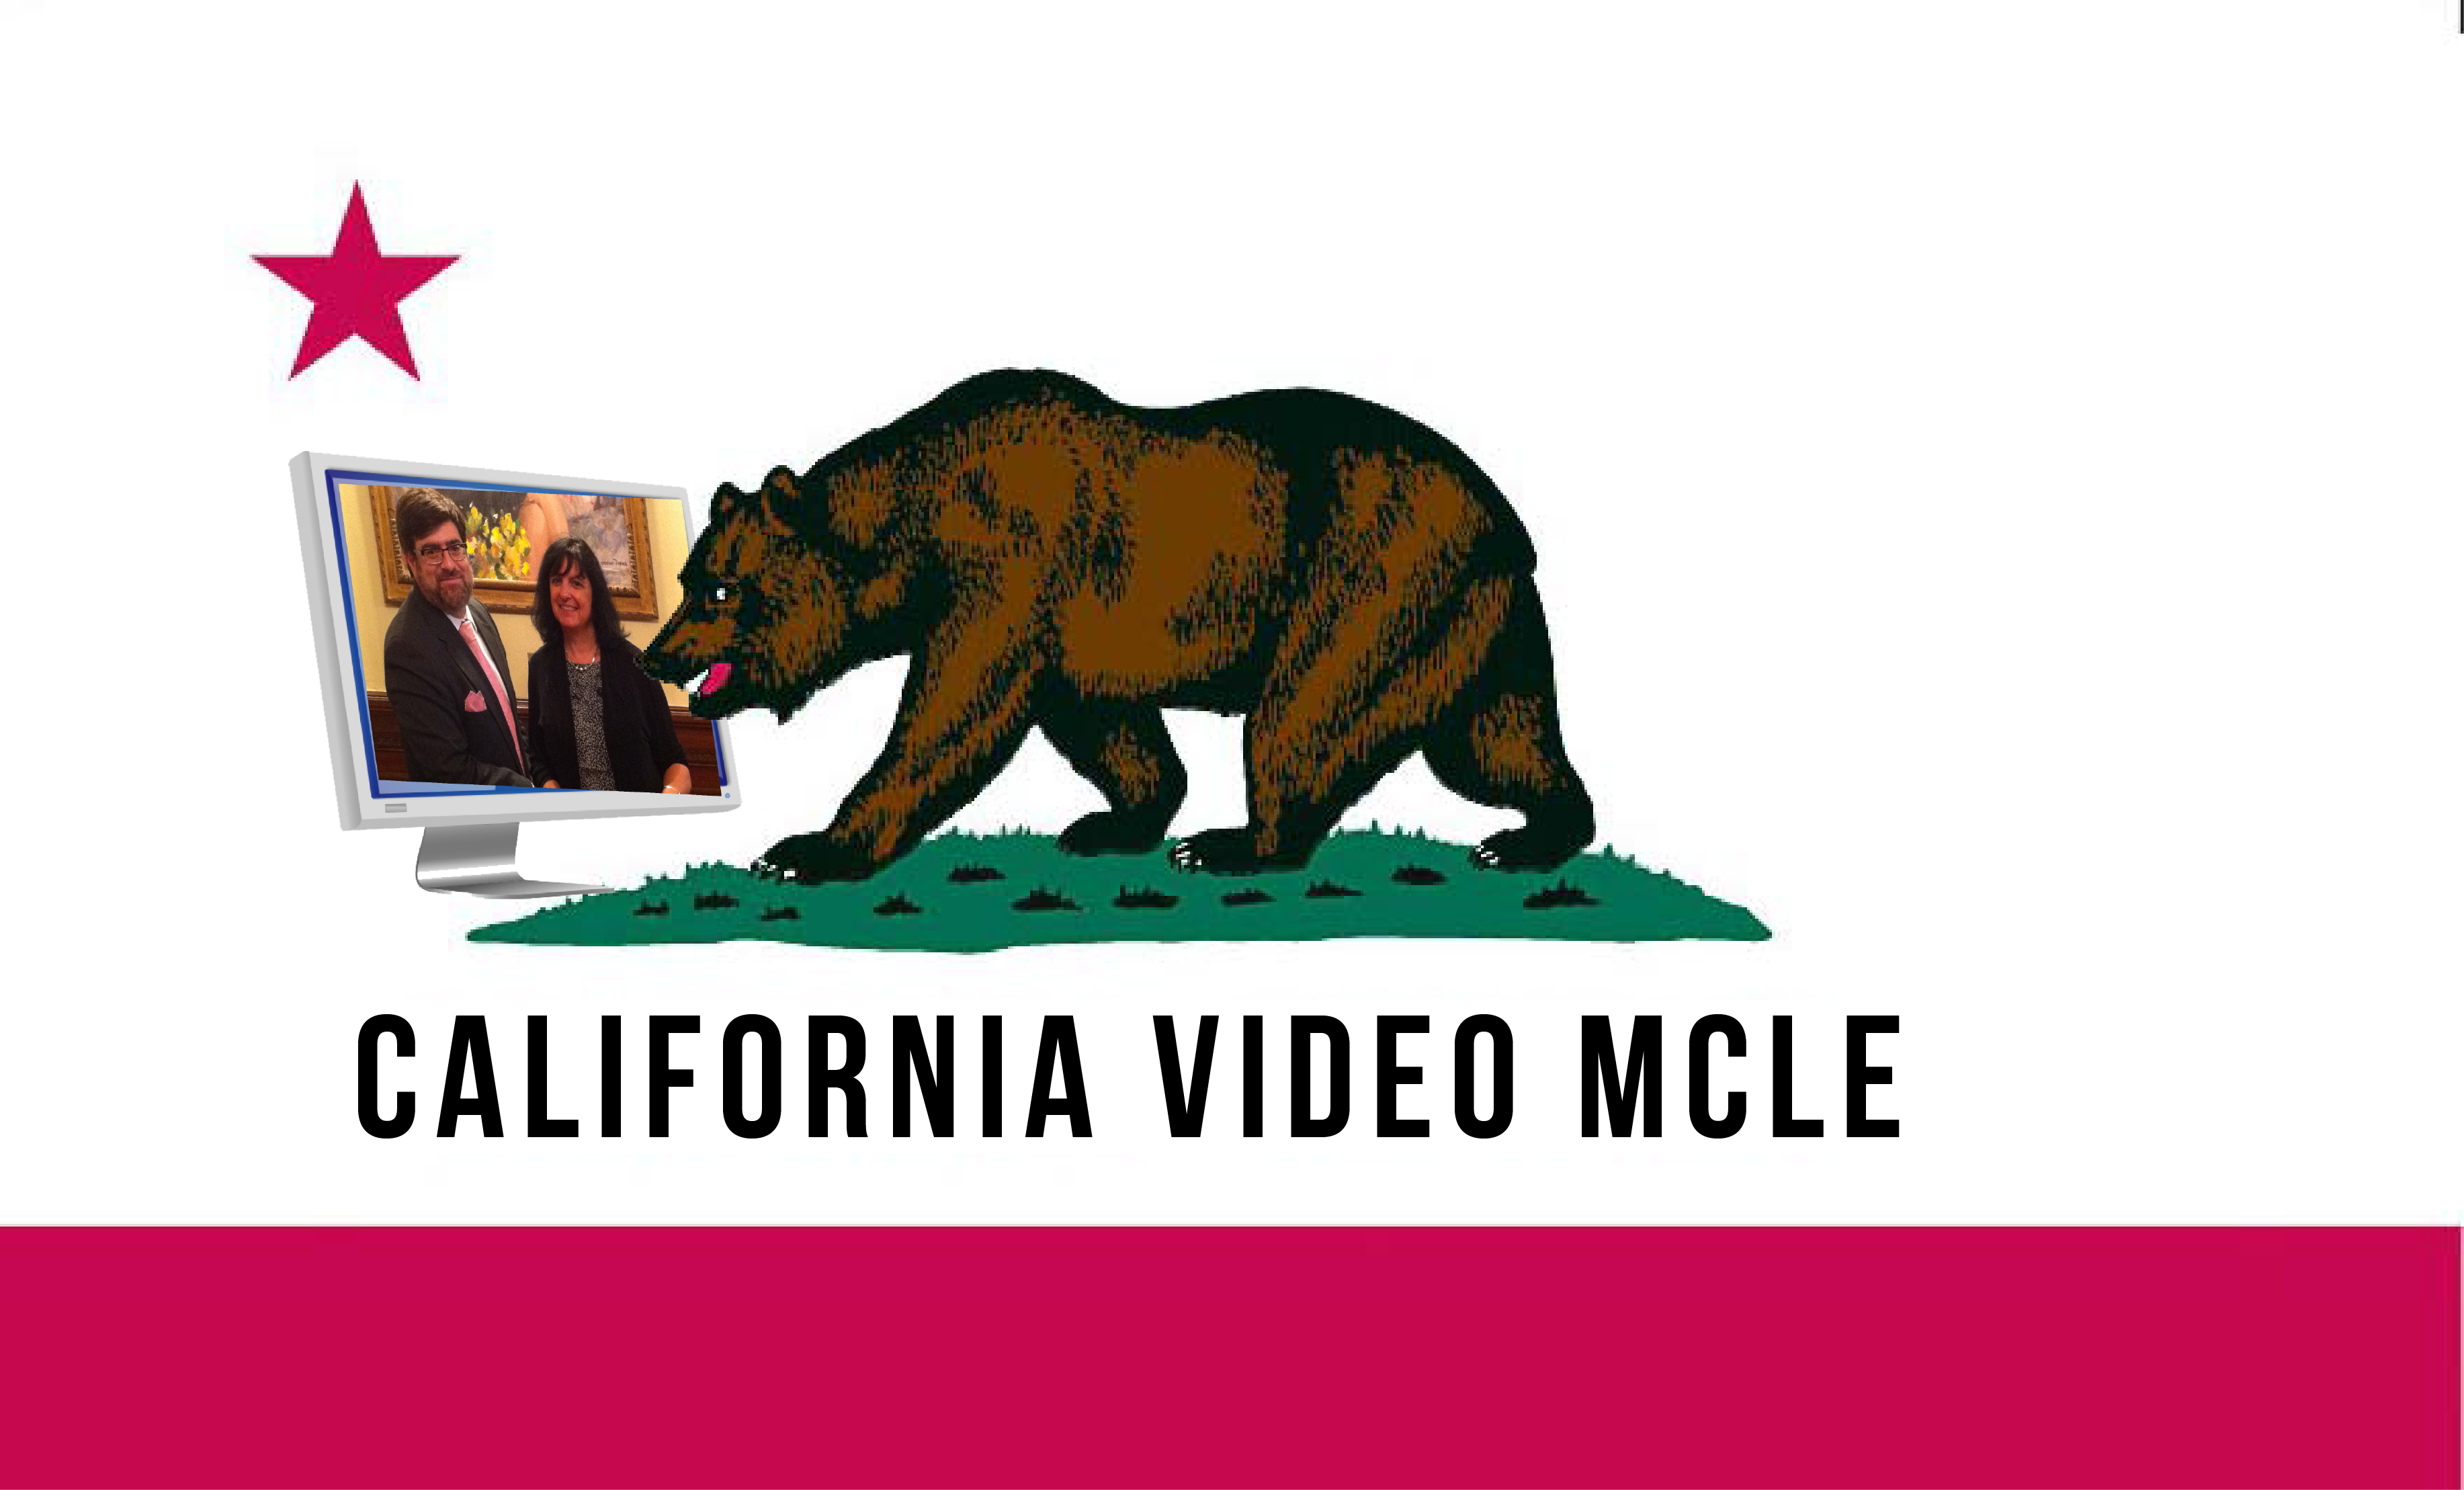 California Video MCLE